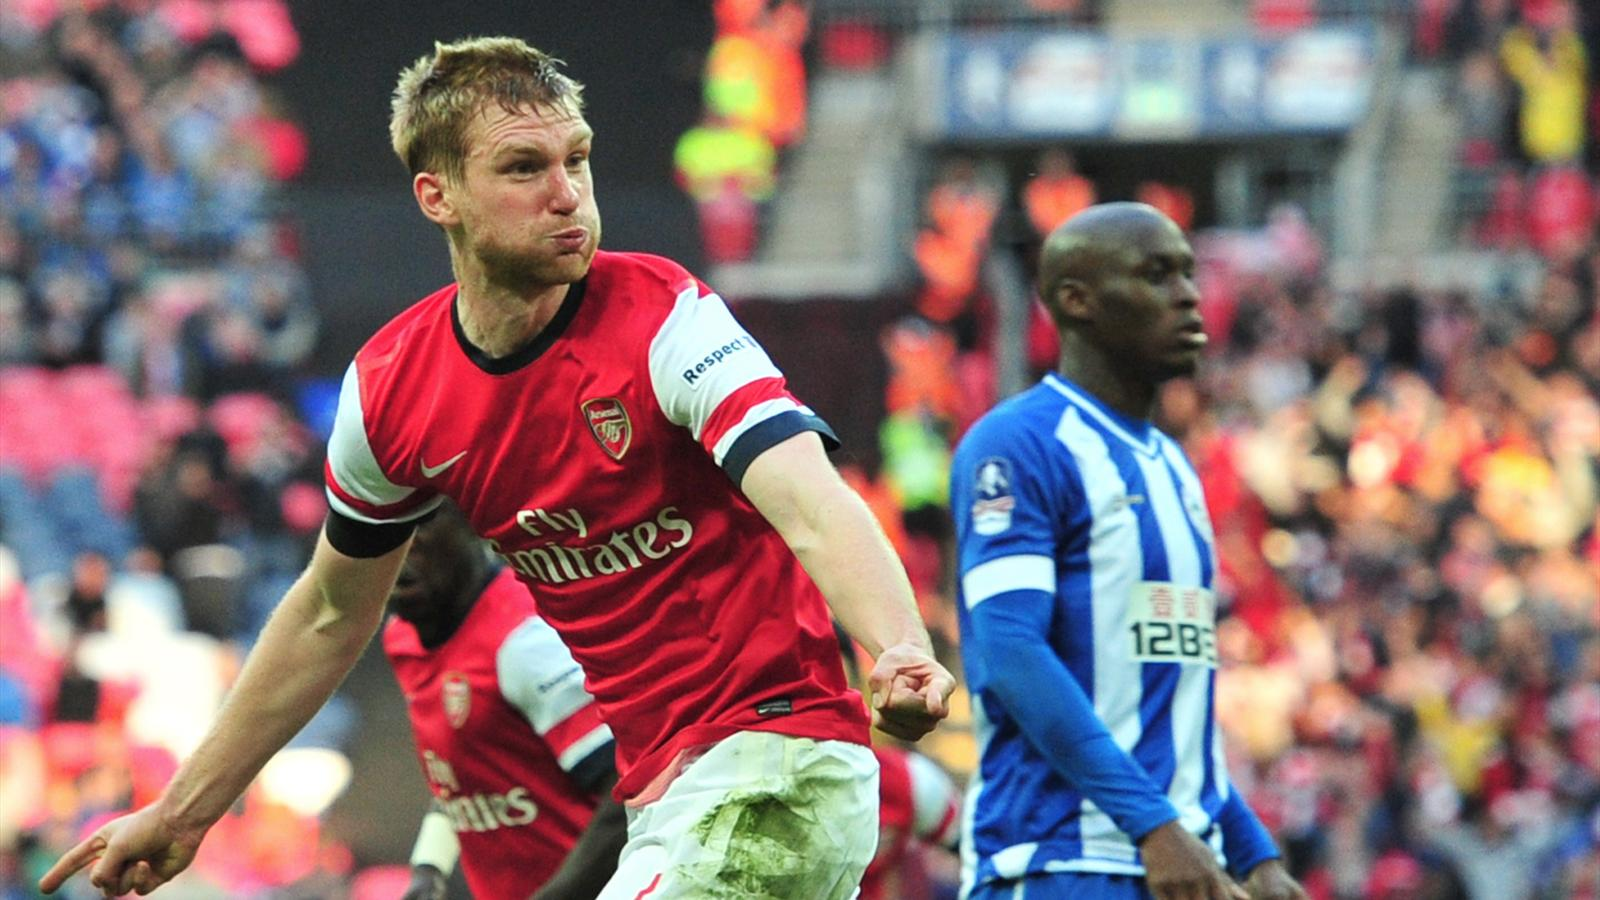 Per Mertesacker (Arsenal)